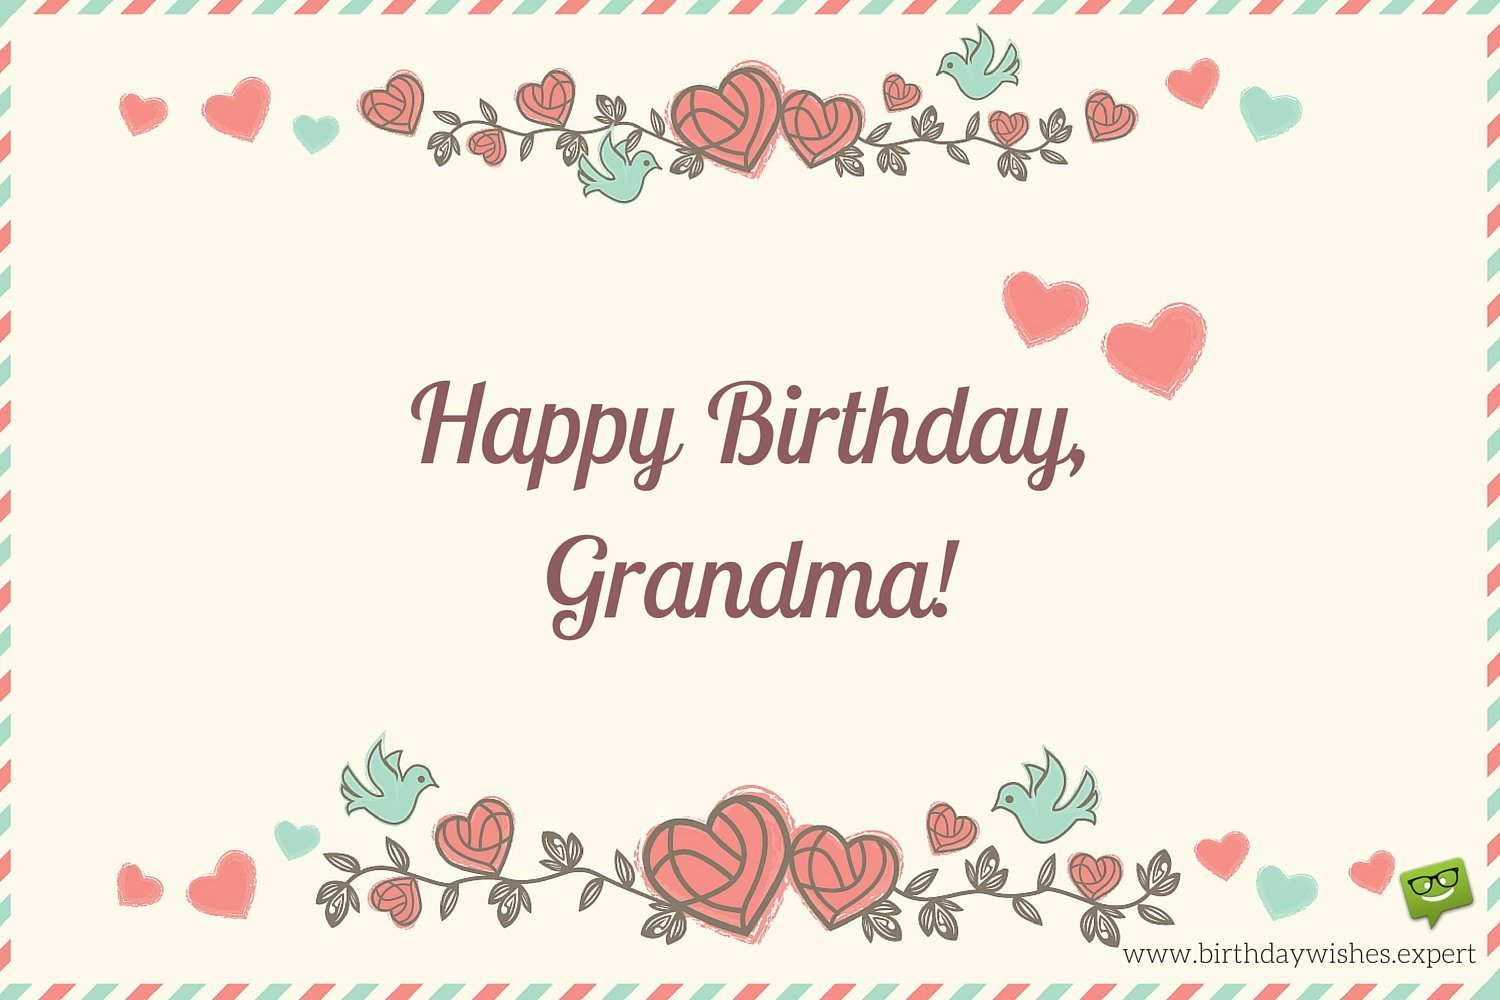 Happy Birthday Grandma on image of an old envelope with flowers and cute hearts